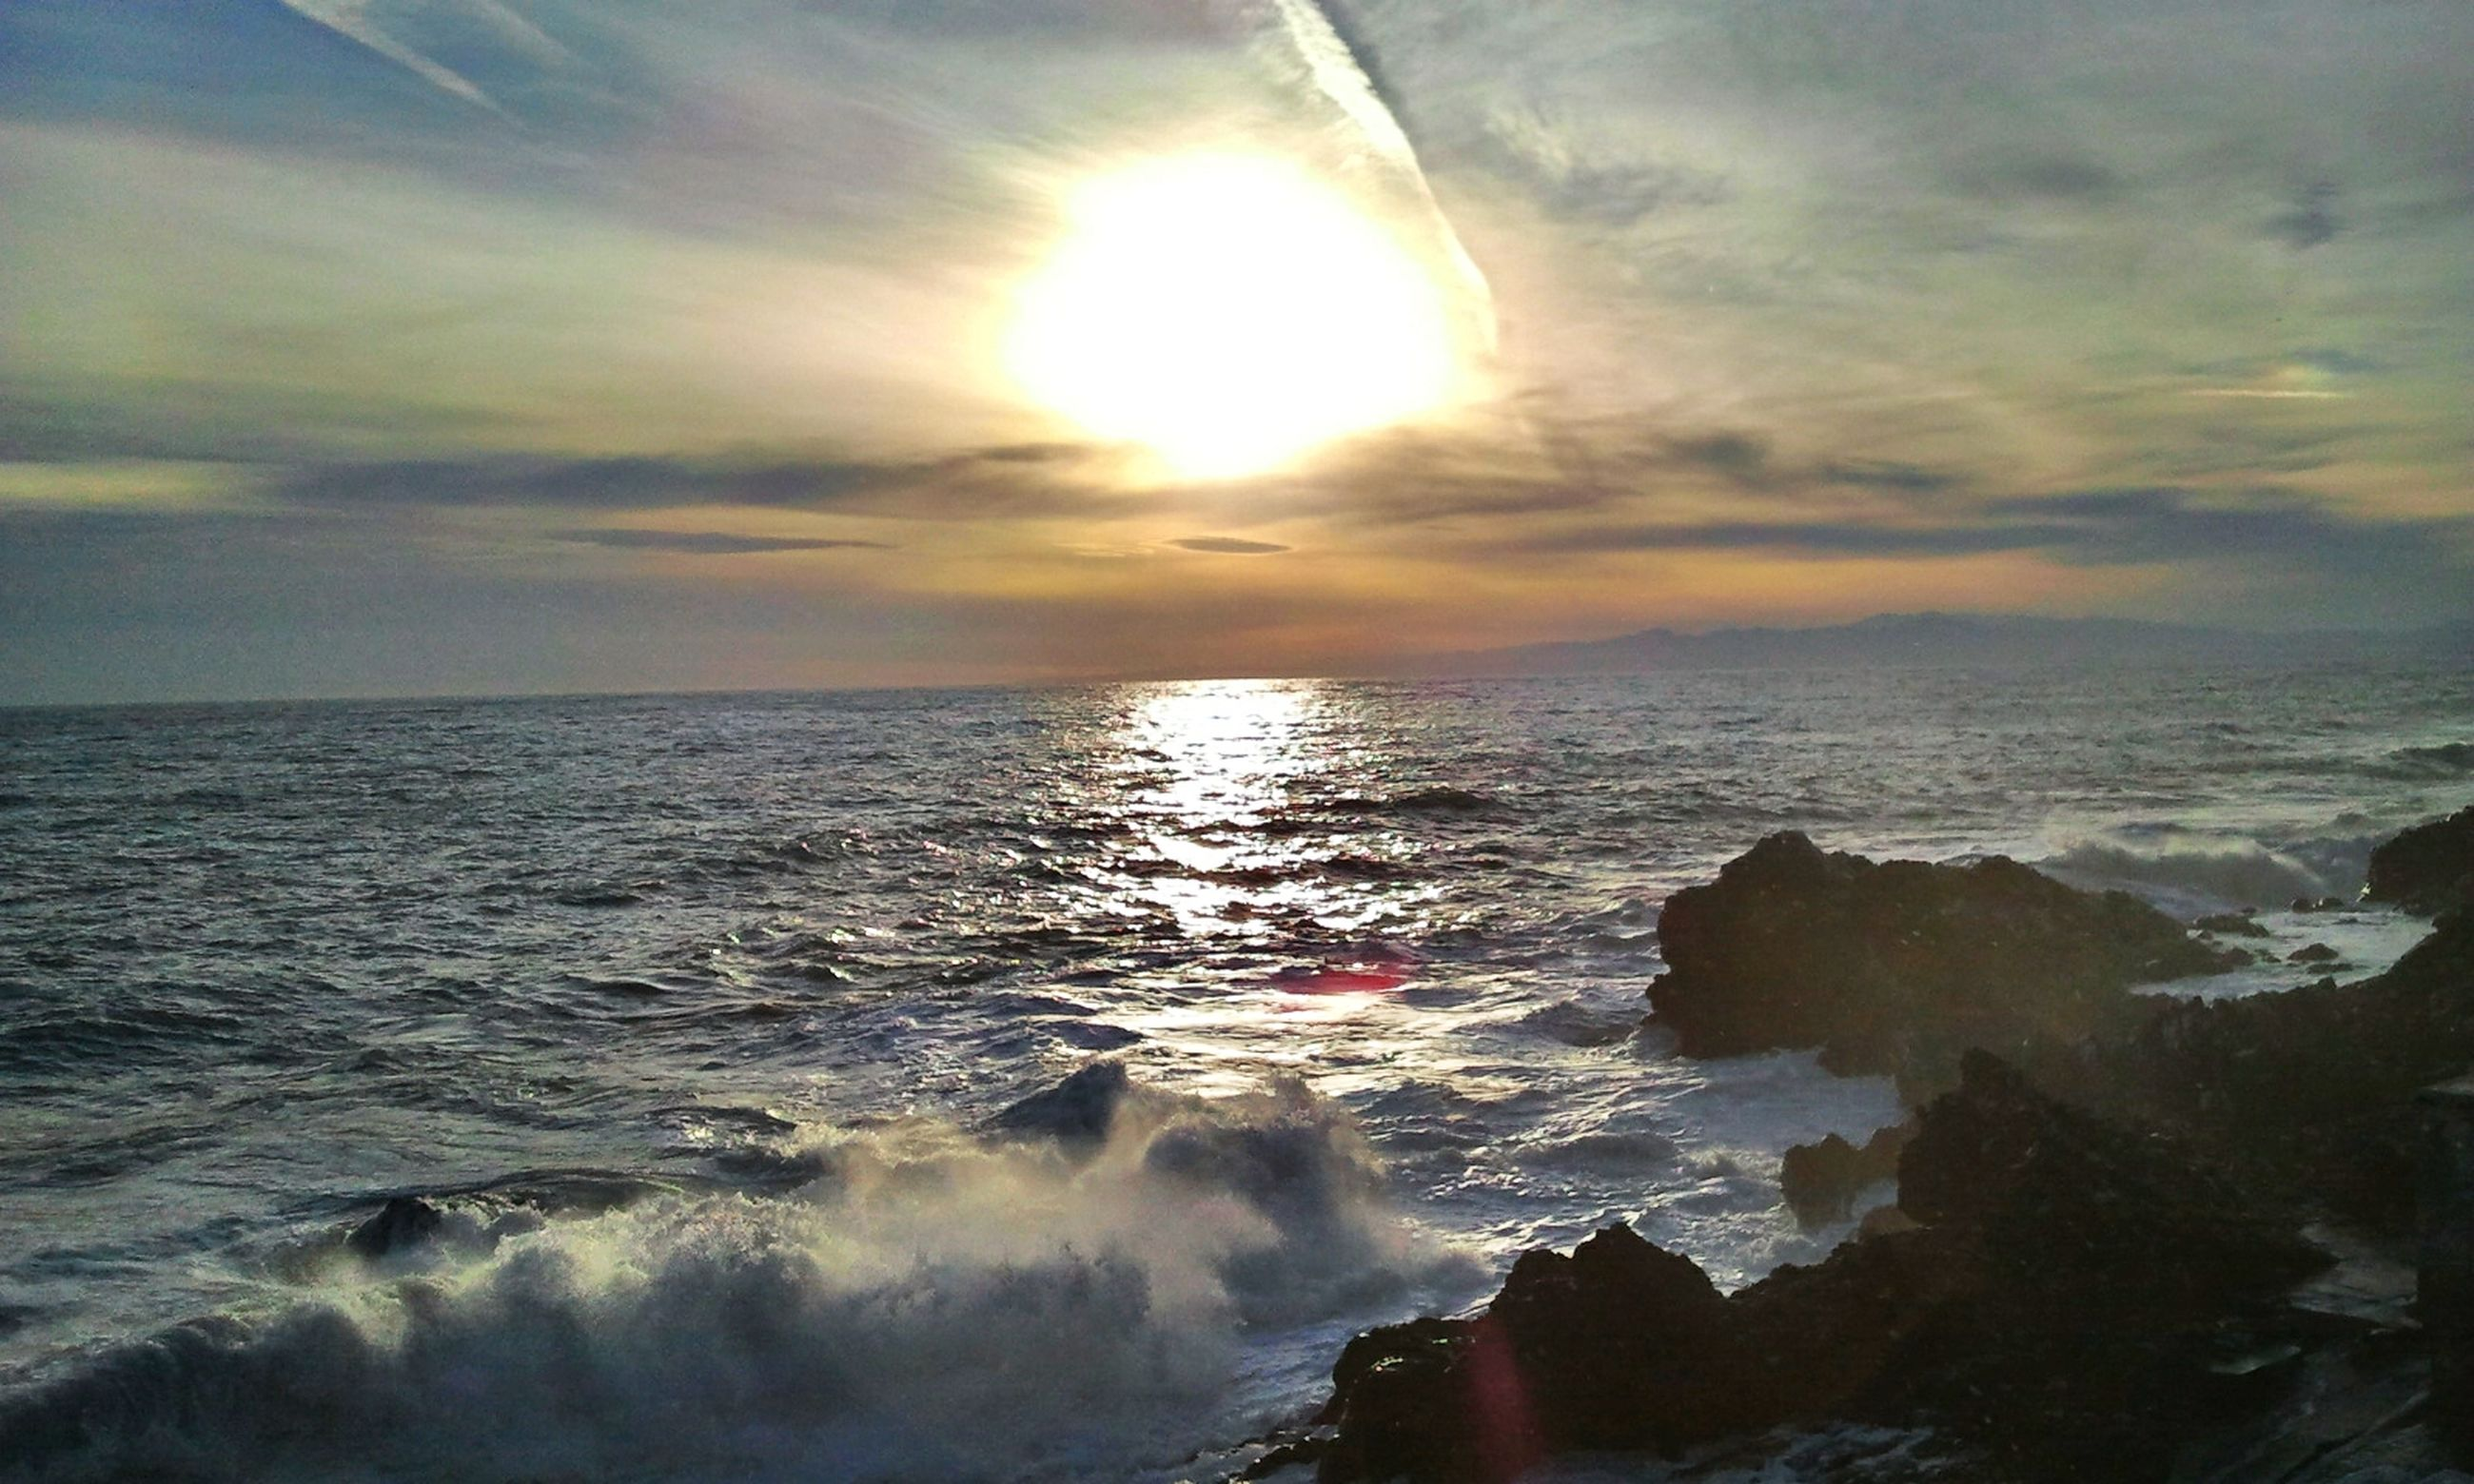 water, sea, scenics, horizon over water, sky, beauty in nature, sunset, wave, tranquil scene, sun, tranquility, nature, cloud - sky, idyllic, waterfront, sunlight, sunbeam, reflection, rock - object, surf